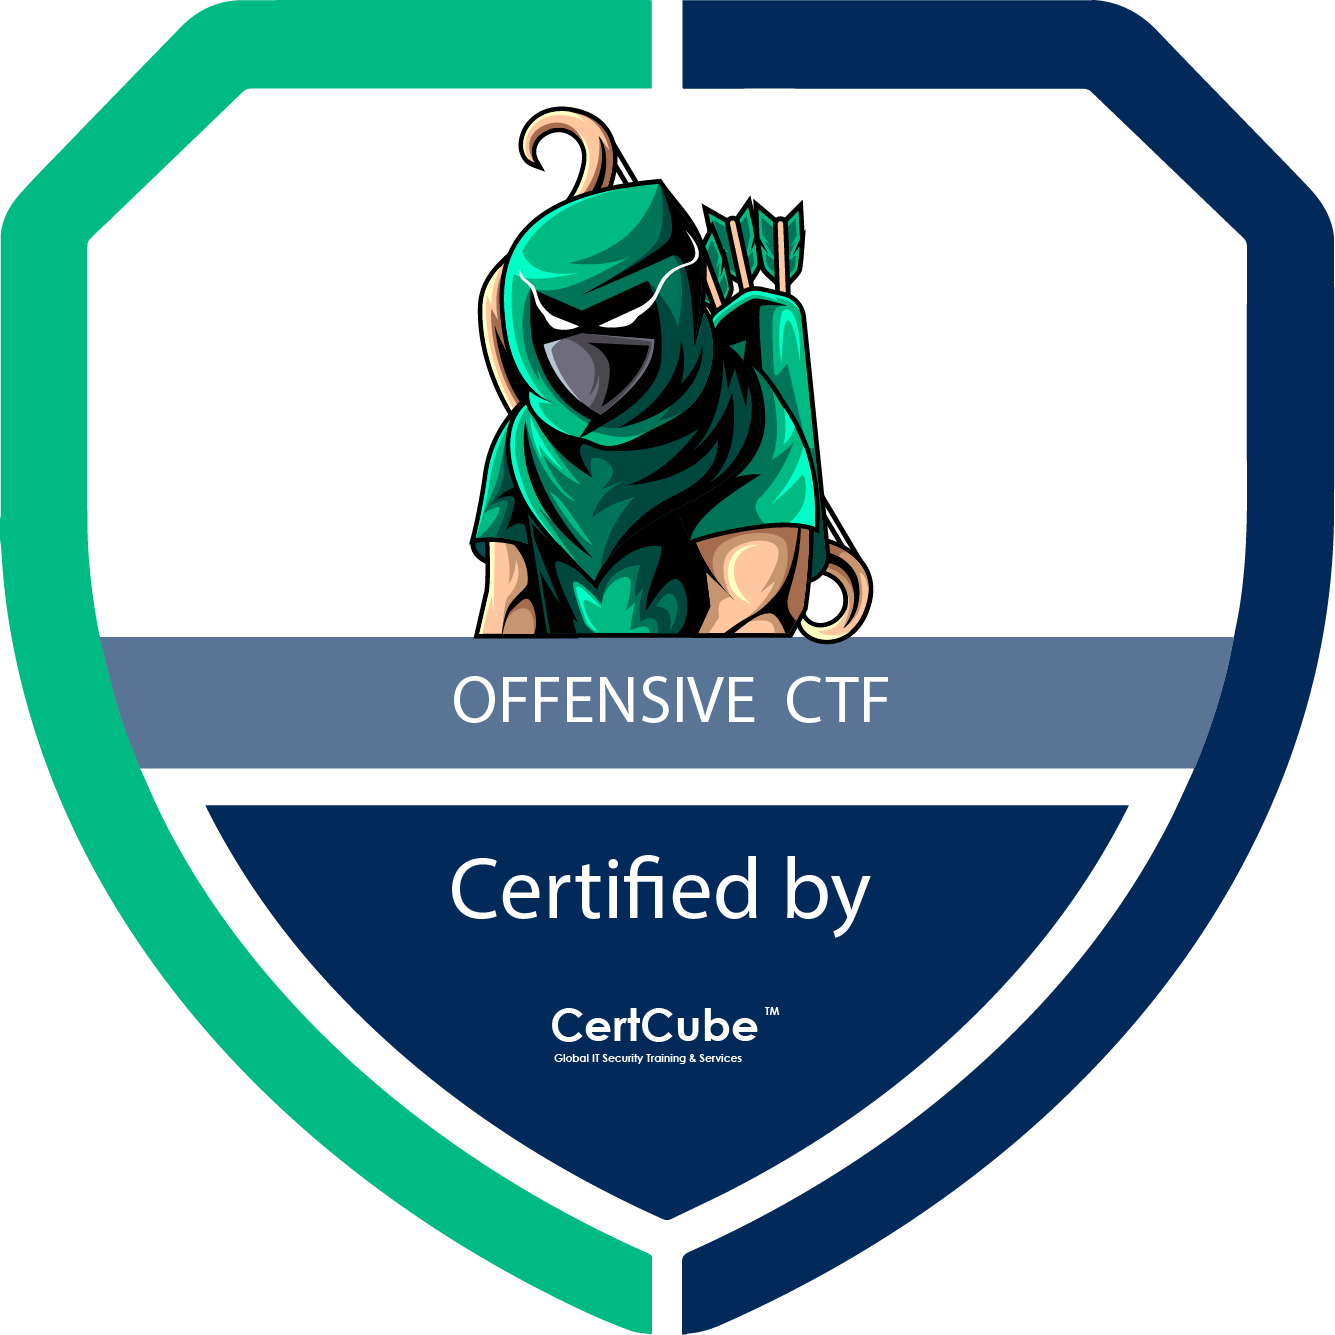 OFFENSIVE CTF